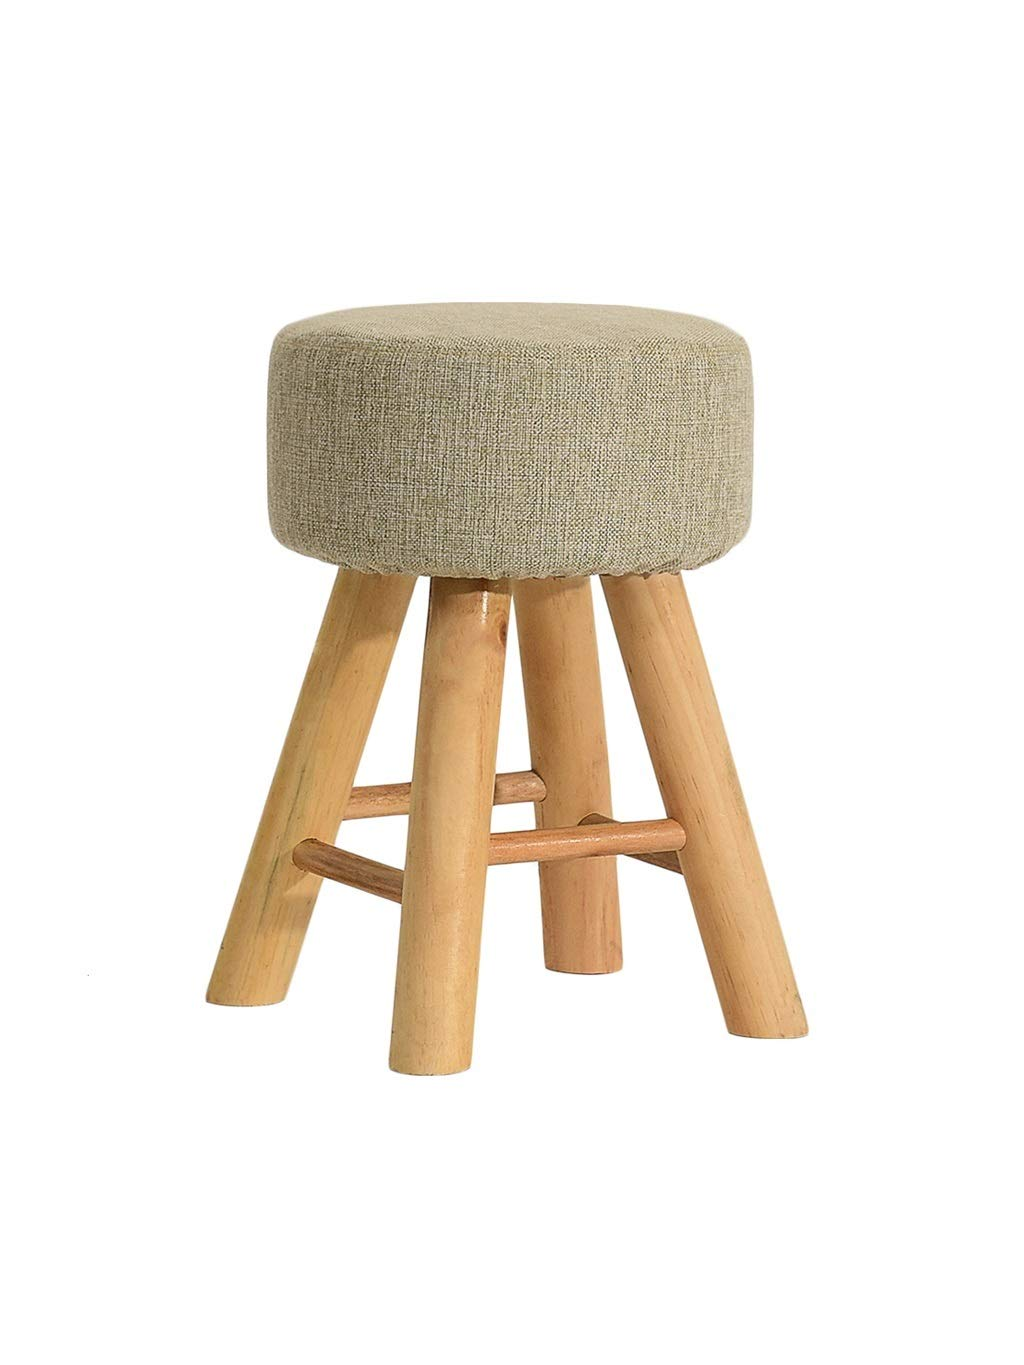 Beige-circle ZH STOOLS Small Stool, Handmade Solid Wood Beech Ergonomics Change shoes Bench Safety Creative Stacked Nordic Portable Seat for Living Room (color   Green-Circle)